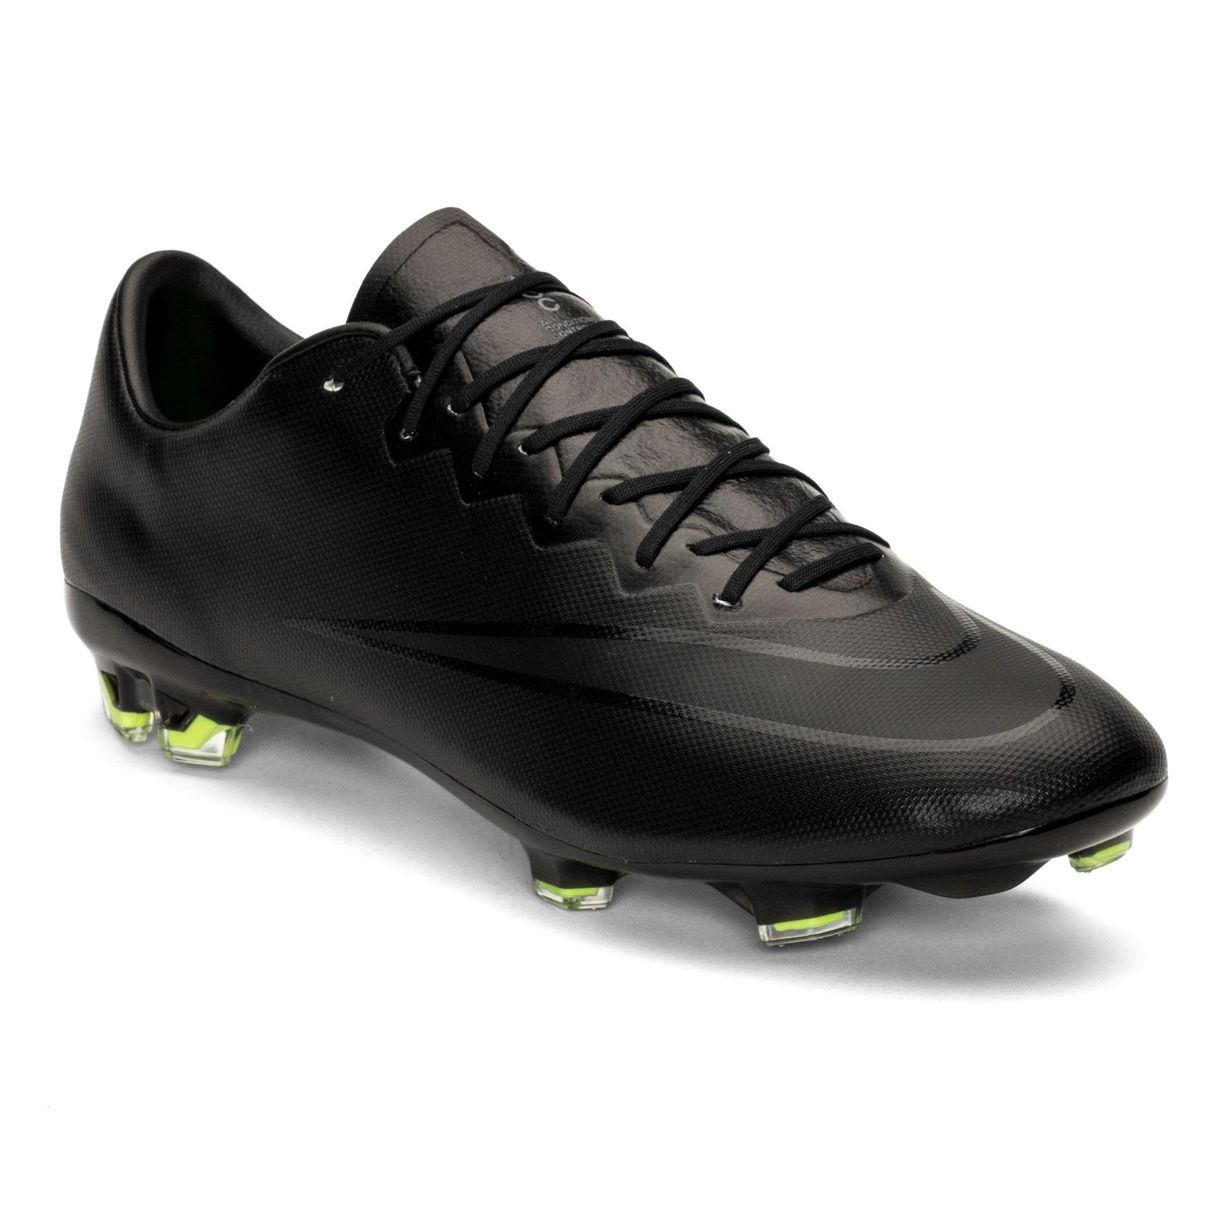 nike mercurial vapor x fg black academy pack www. Black Bedroom Furniture Sets. Home Design Ideas